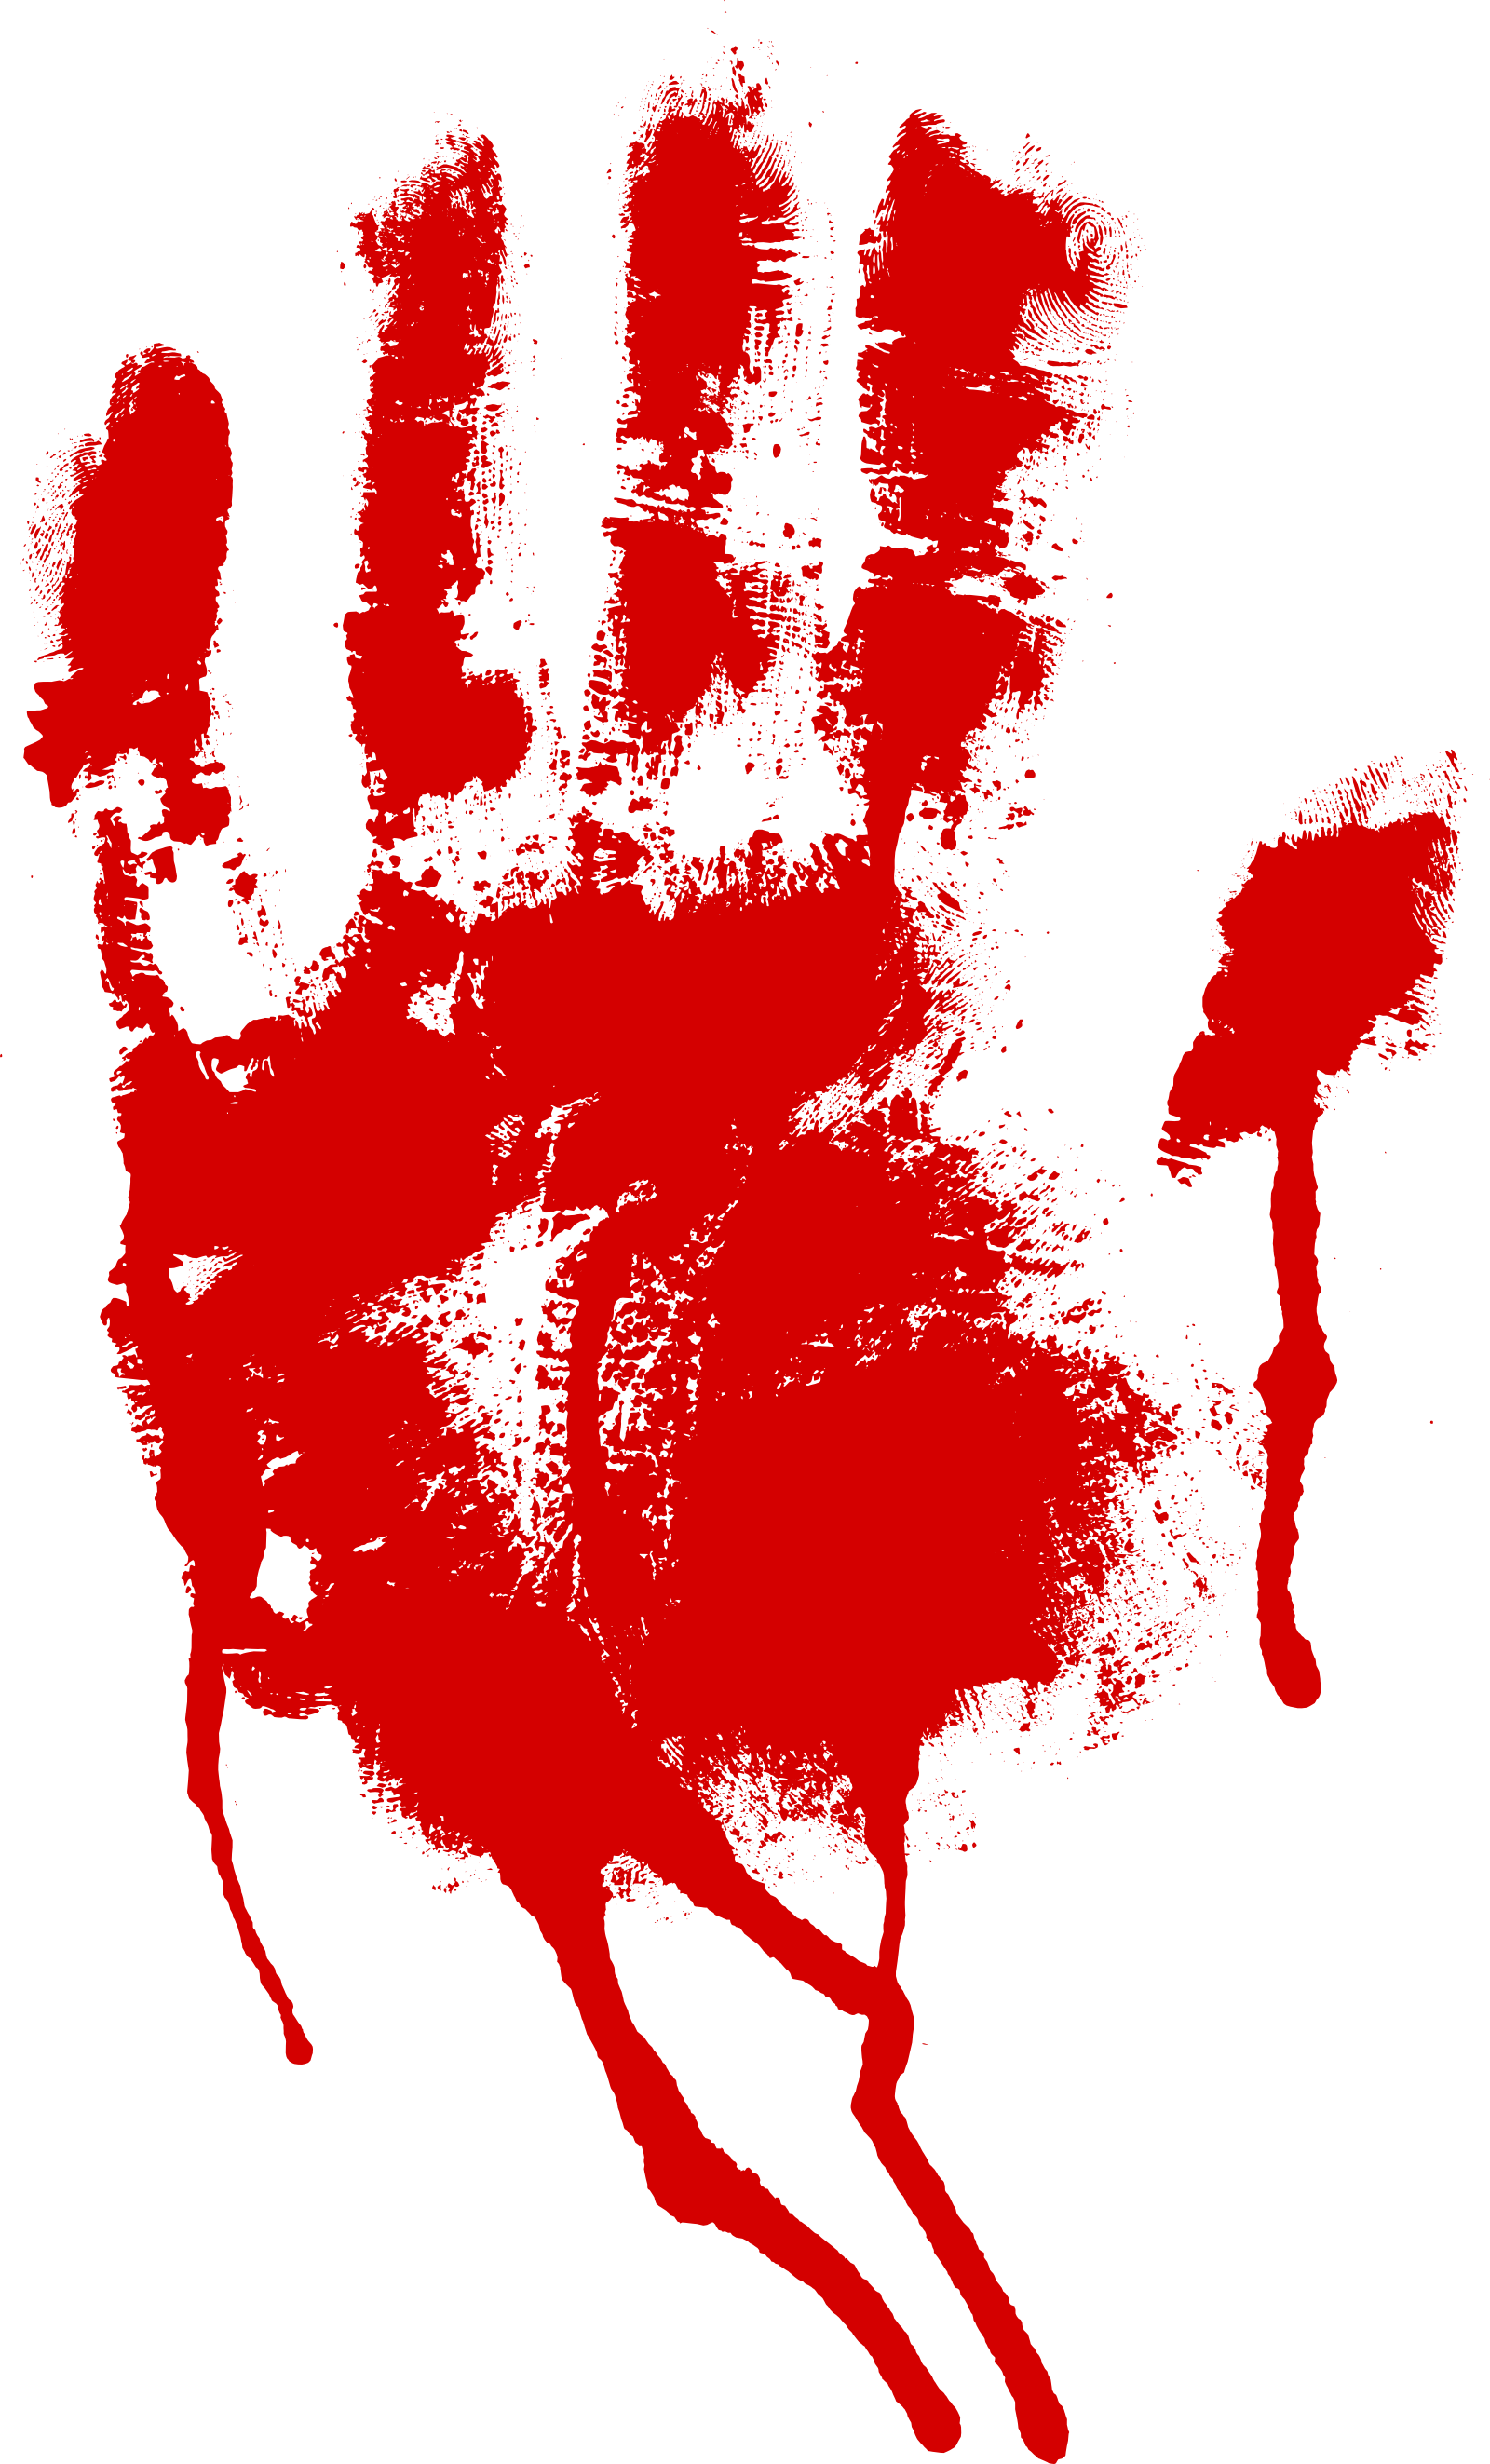 red bloody png. Handprint drawing blood graphic black and white library